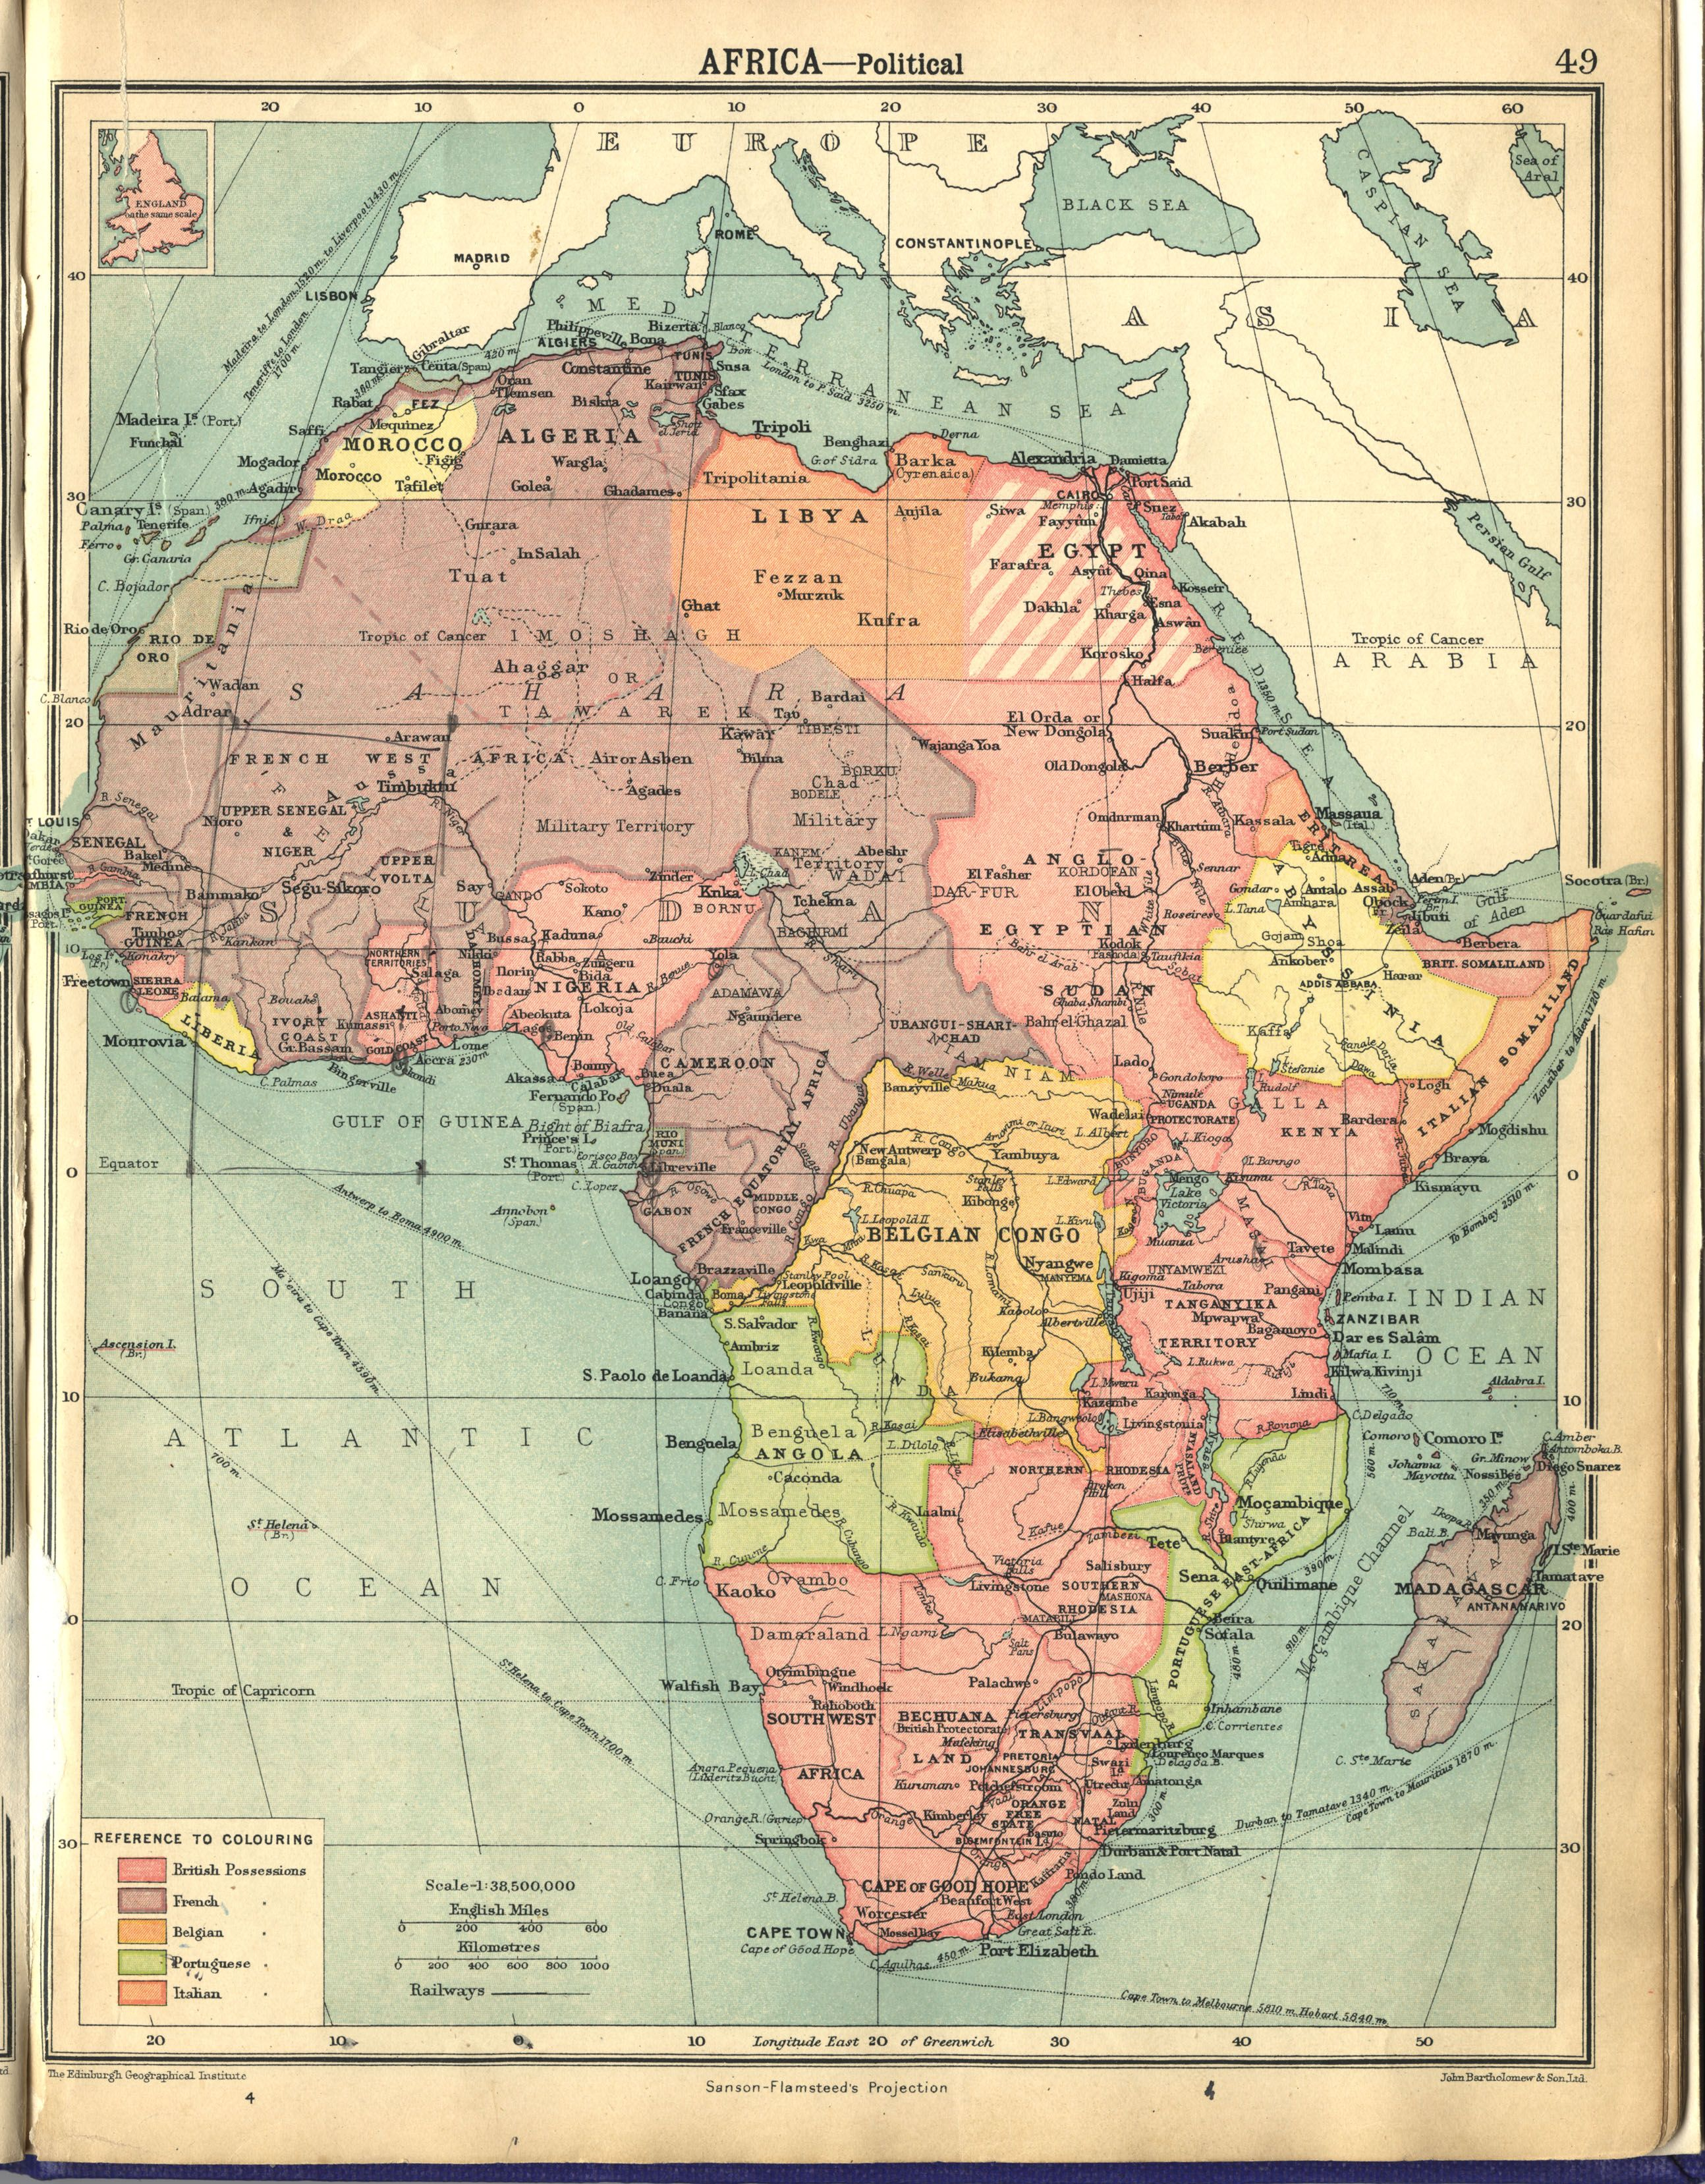 British Map of Colonial Africa 1922